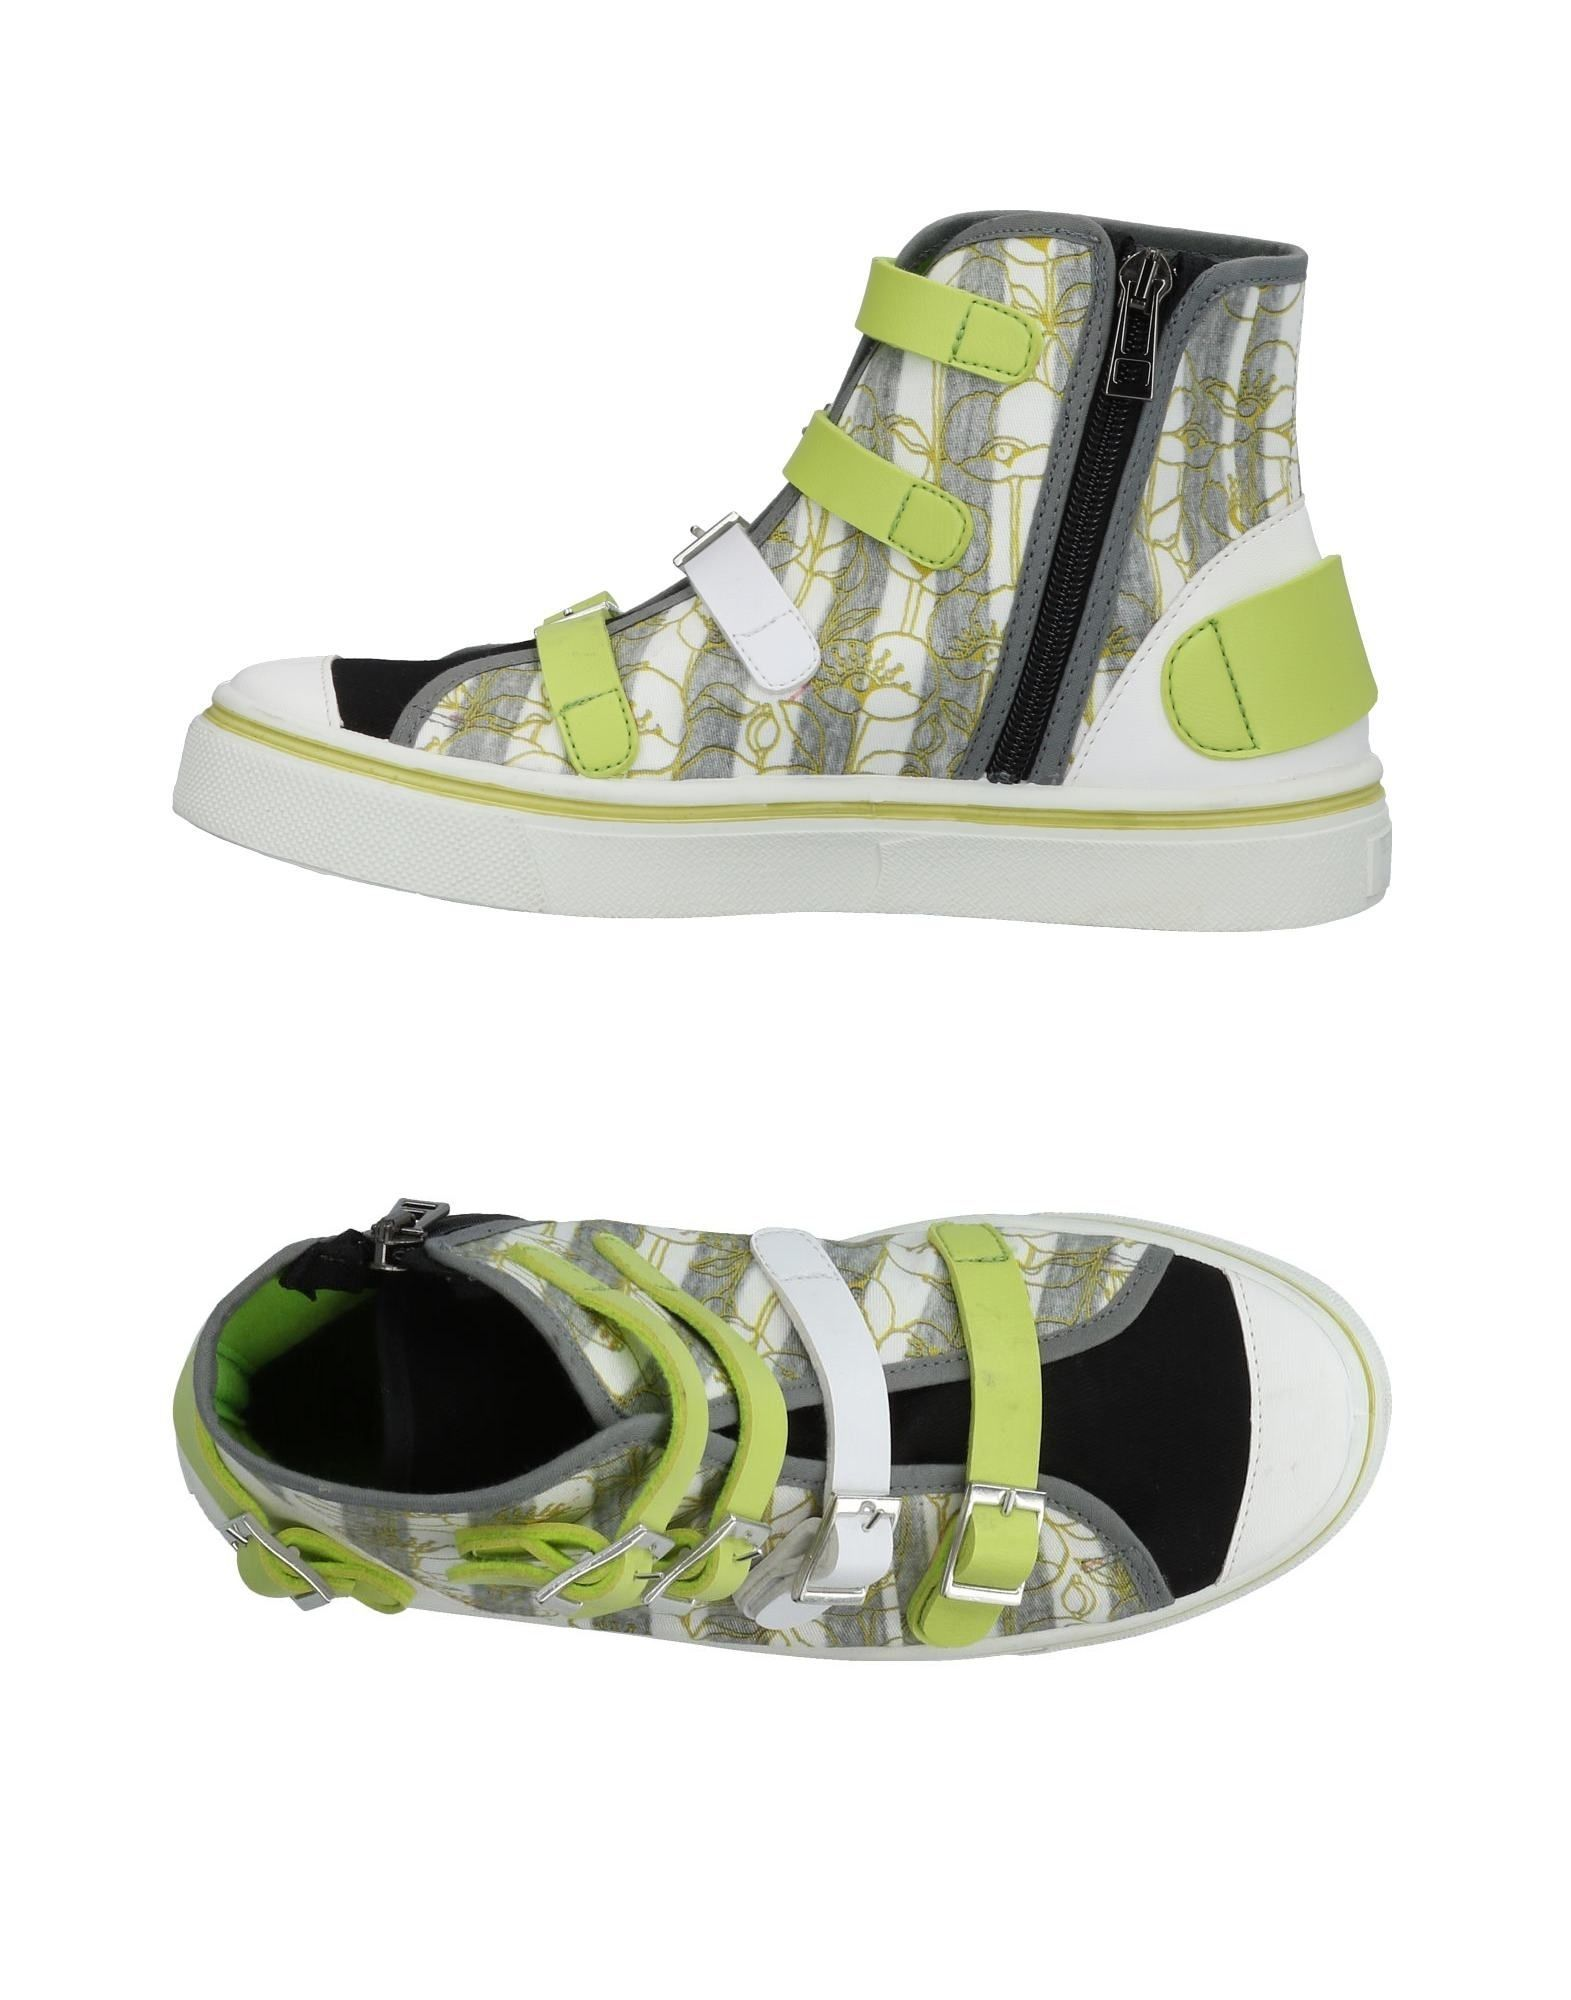 Sneakers Pianurastudio Femme - Sneakers Pianurastudio sur